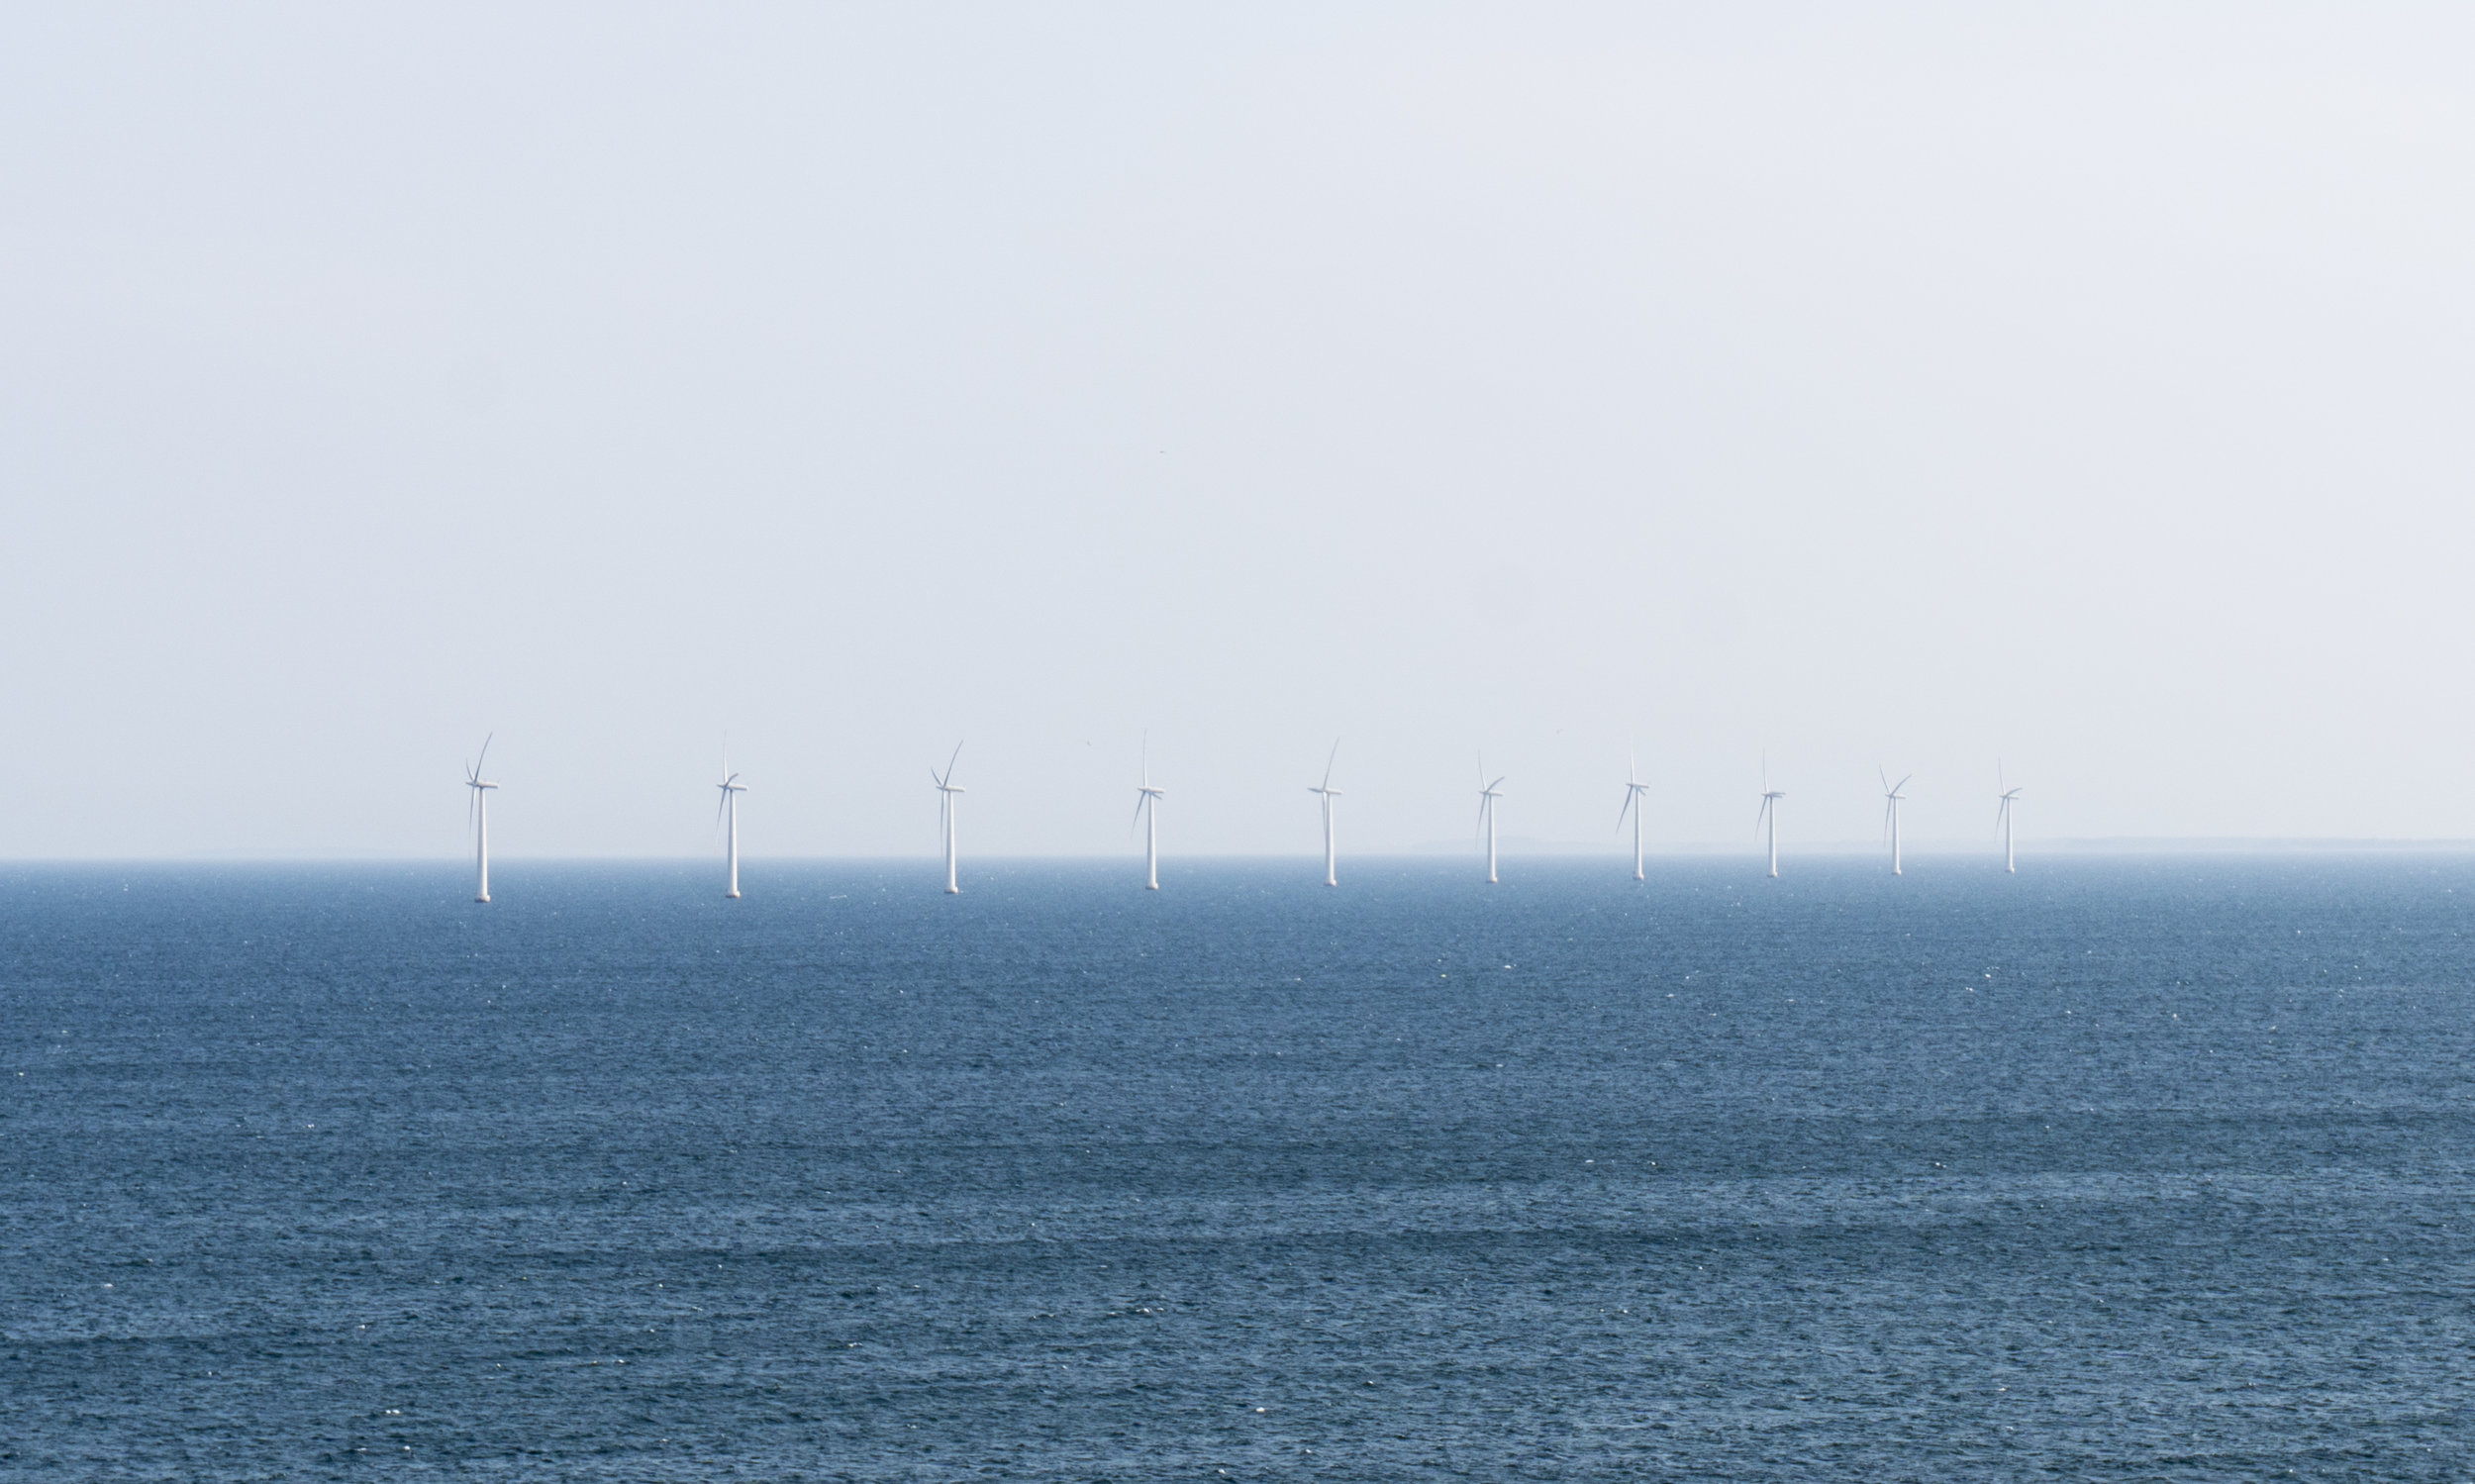 The offshore turbines south of the island. Picture by Amélie Drouet